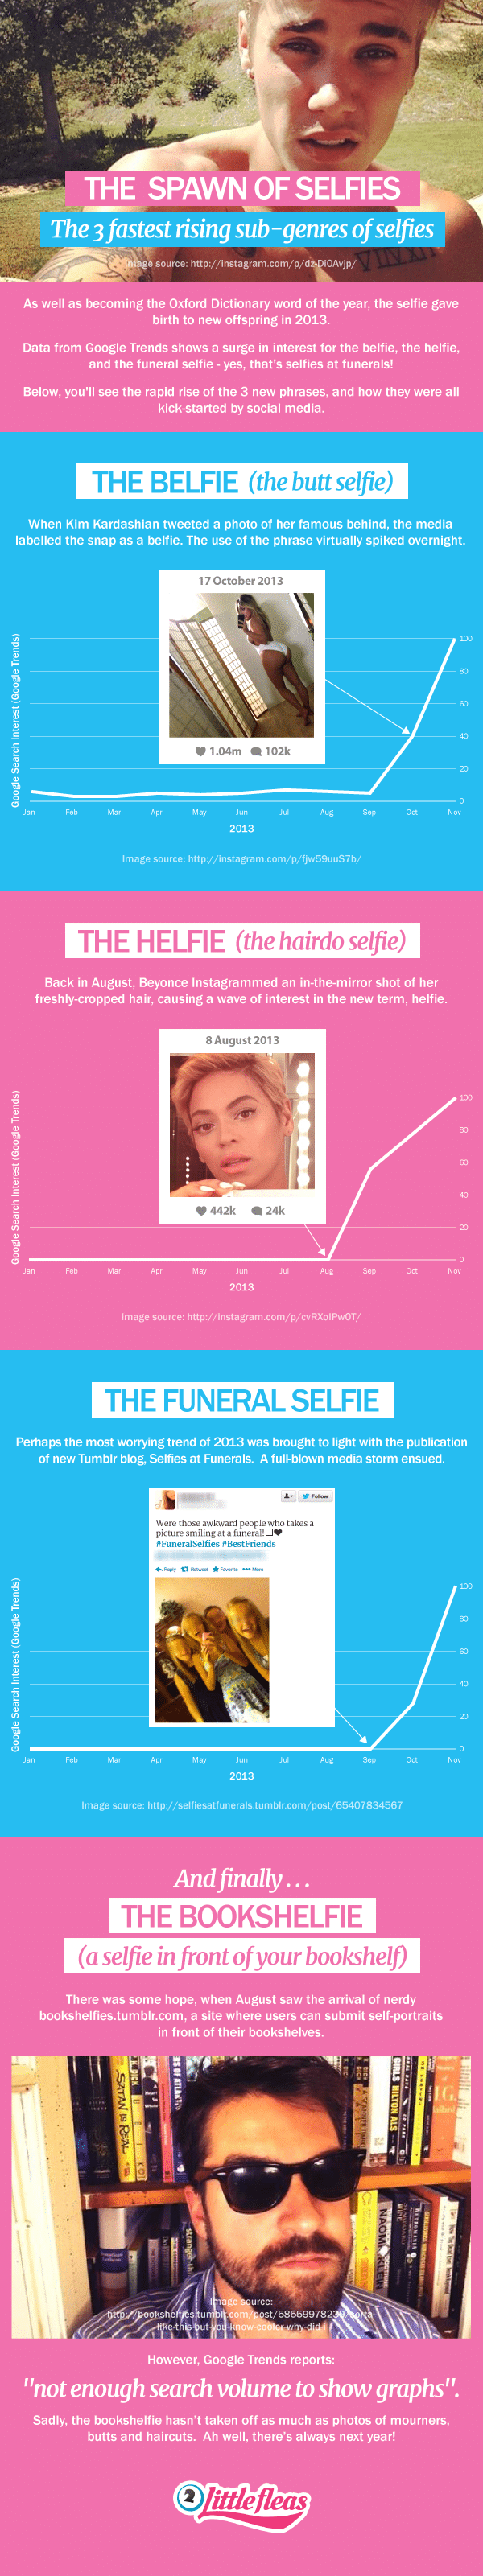 The 3 Fastest Rising Sub-Genres Of Selfies [Infographic]